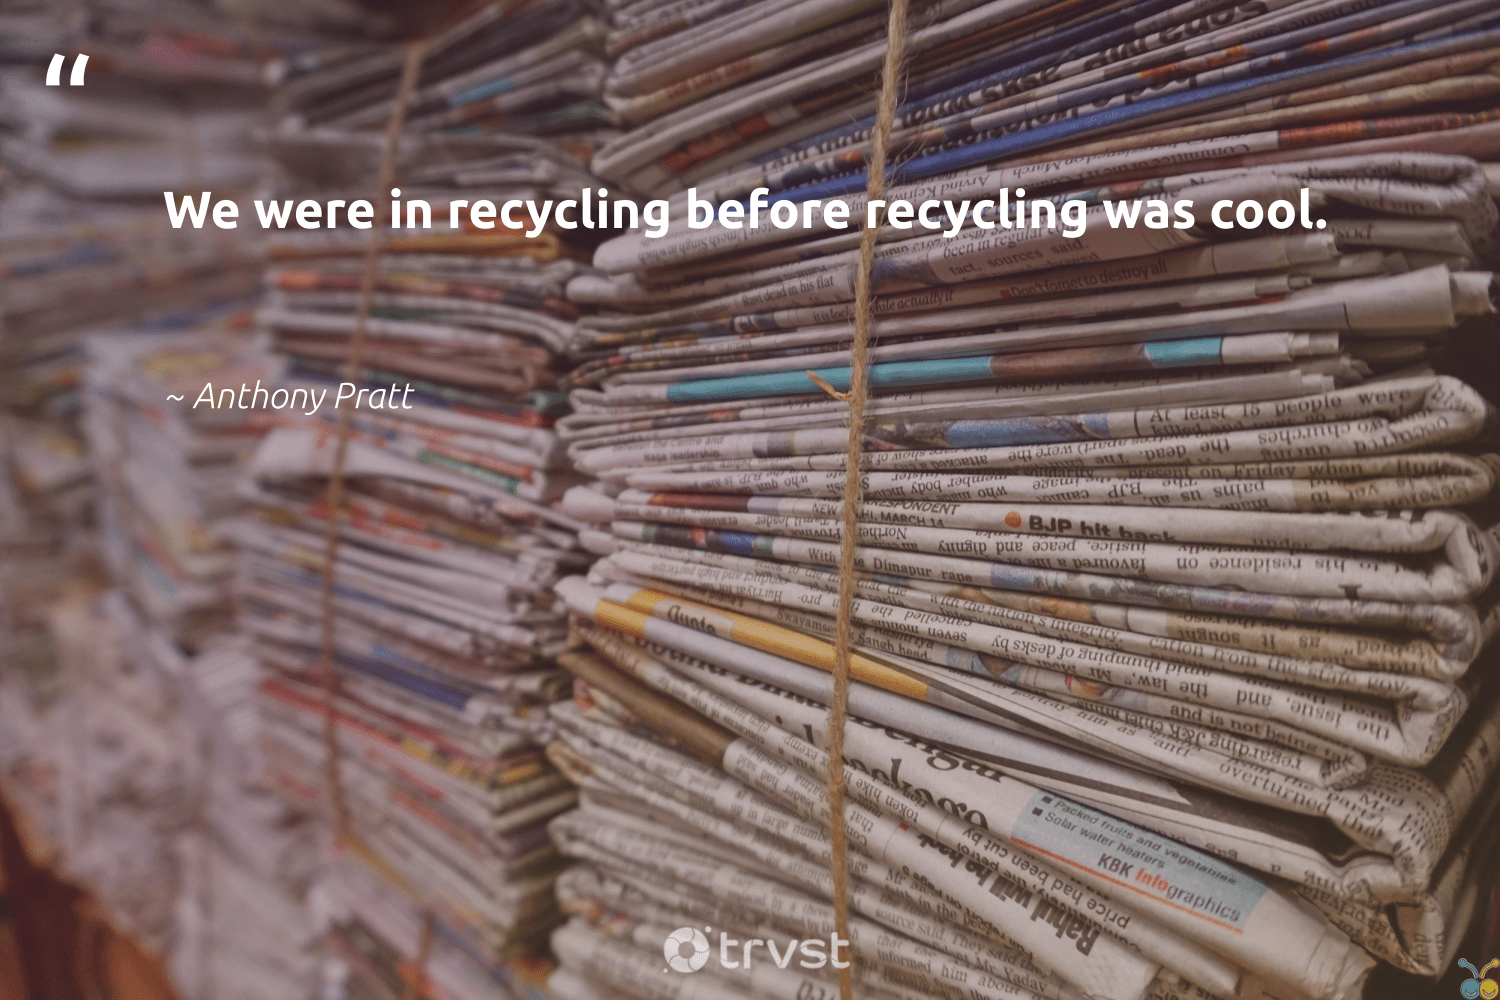 """""""We were in recycling before recycling was cool.""""  - Anthony Pratt #trvst #quotes #recycling #upcycling #ecoactivism #wasteless #dosomething #refuse #dogood #environment #impact #repair"""